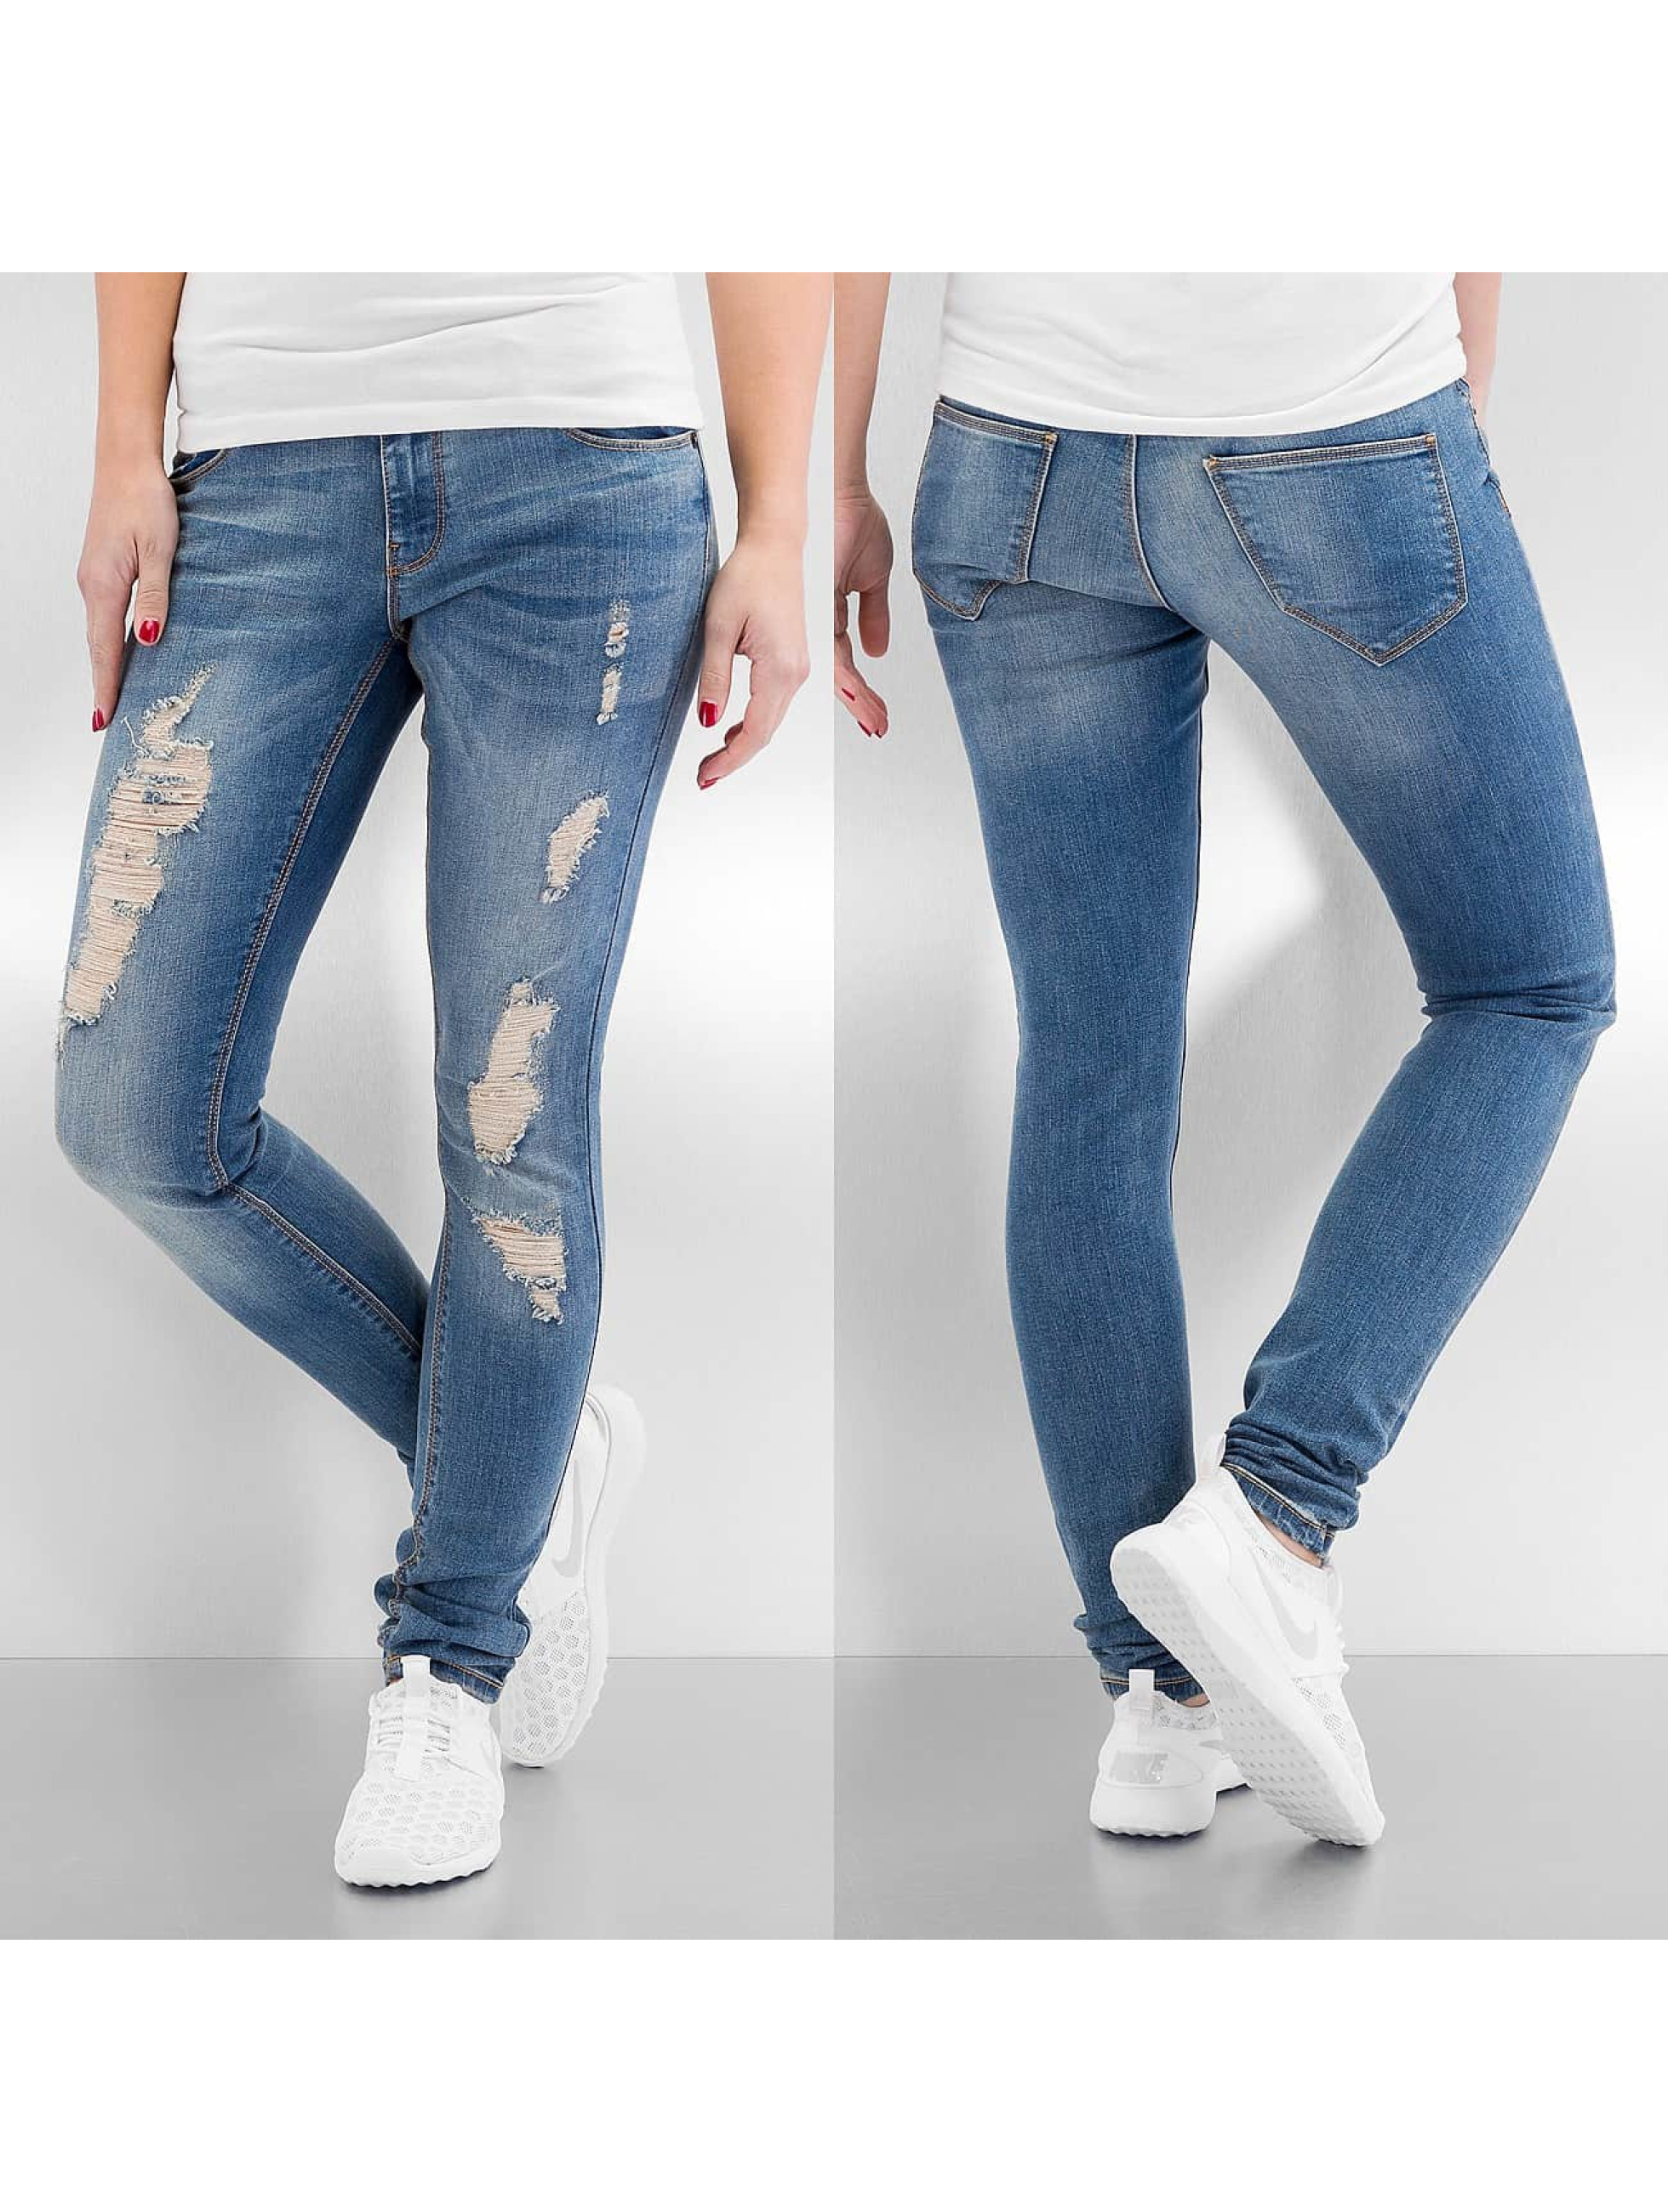 Vero Moda Frauen Skinny Jeans vmFive Low Super Slim in blau